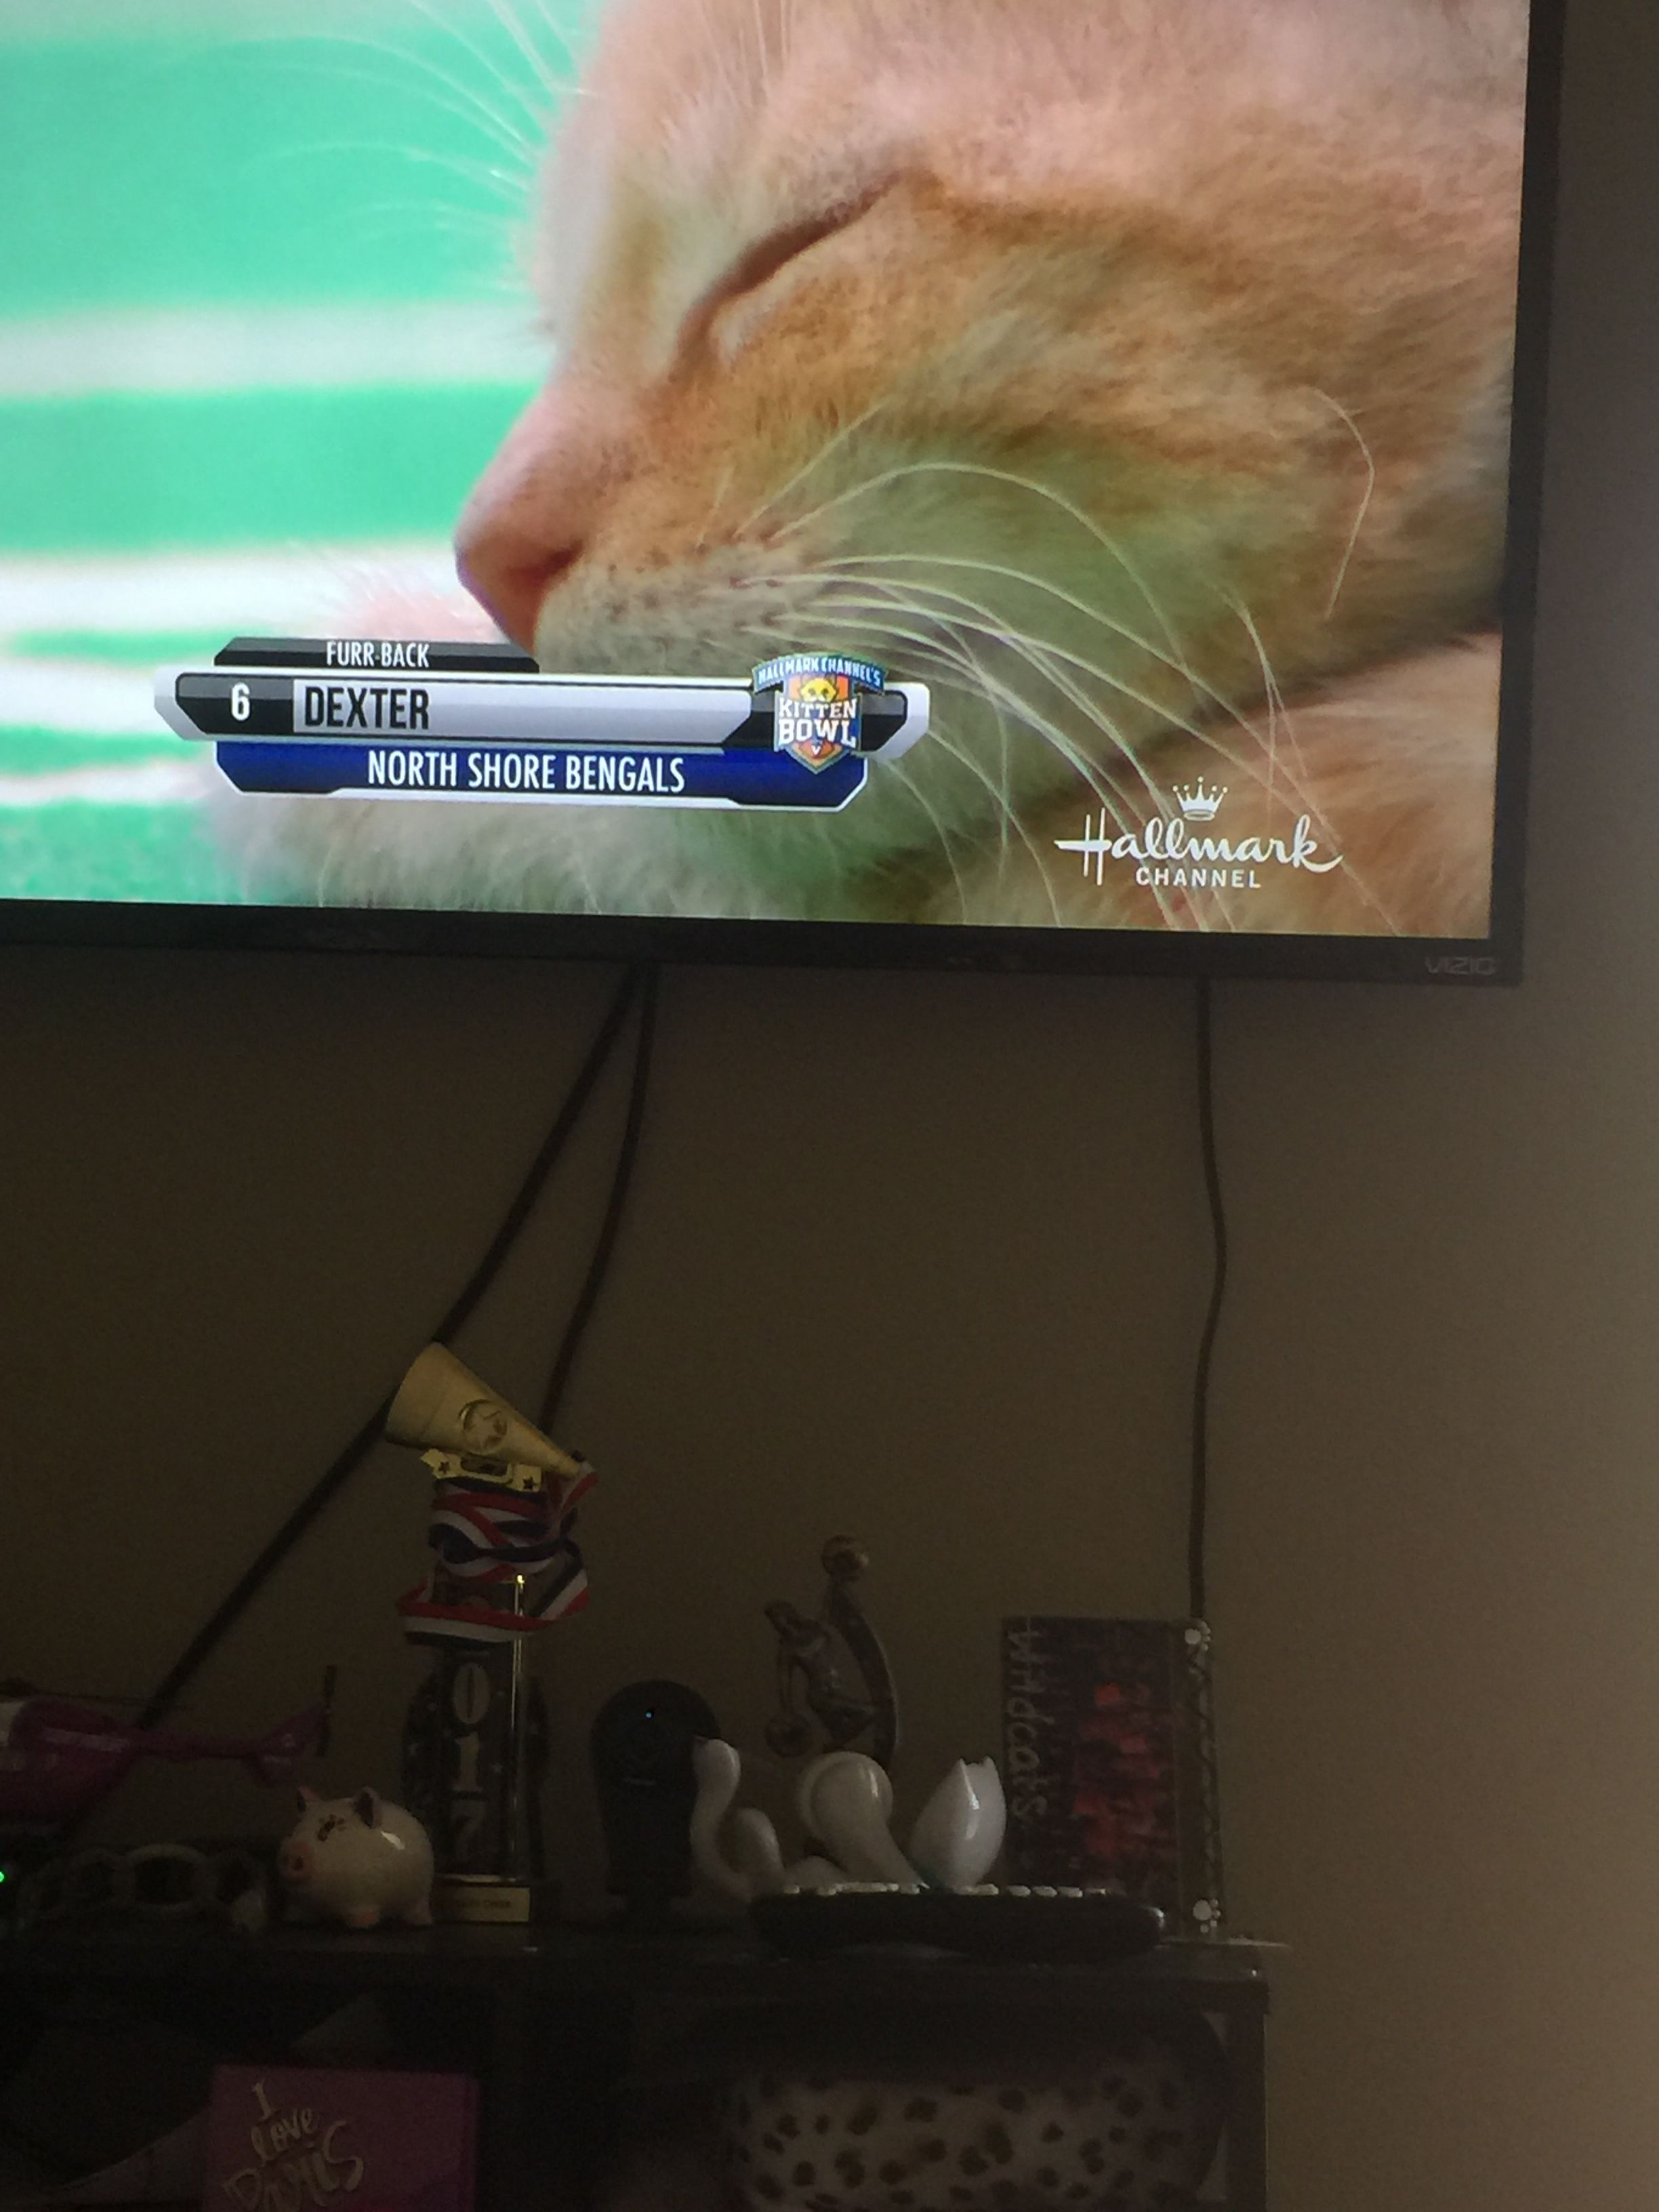 Pin By S T G Art On Kitten Bowl Hallmark Channel Kitten Bowls North Shore